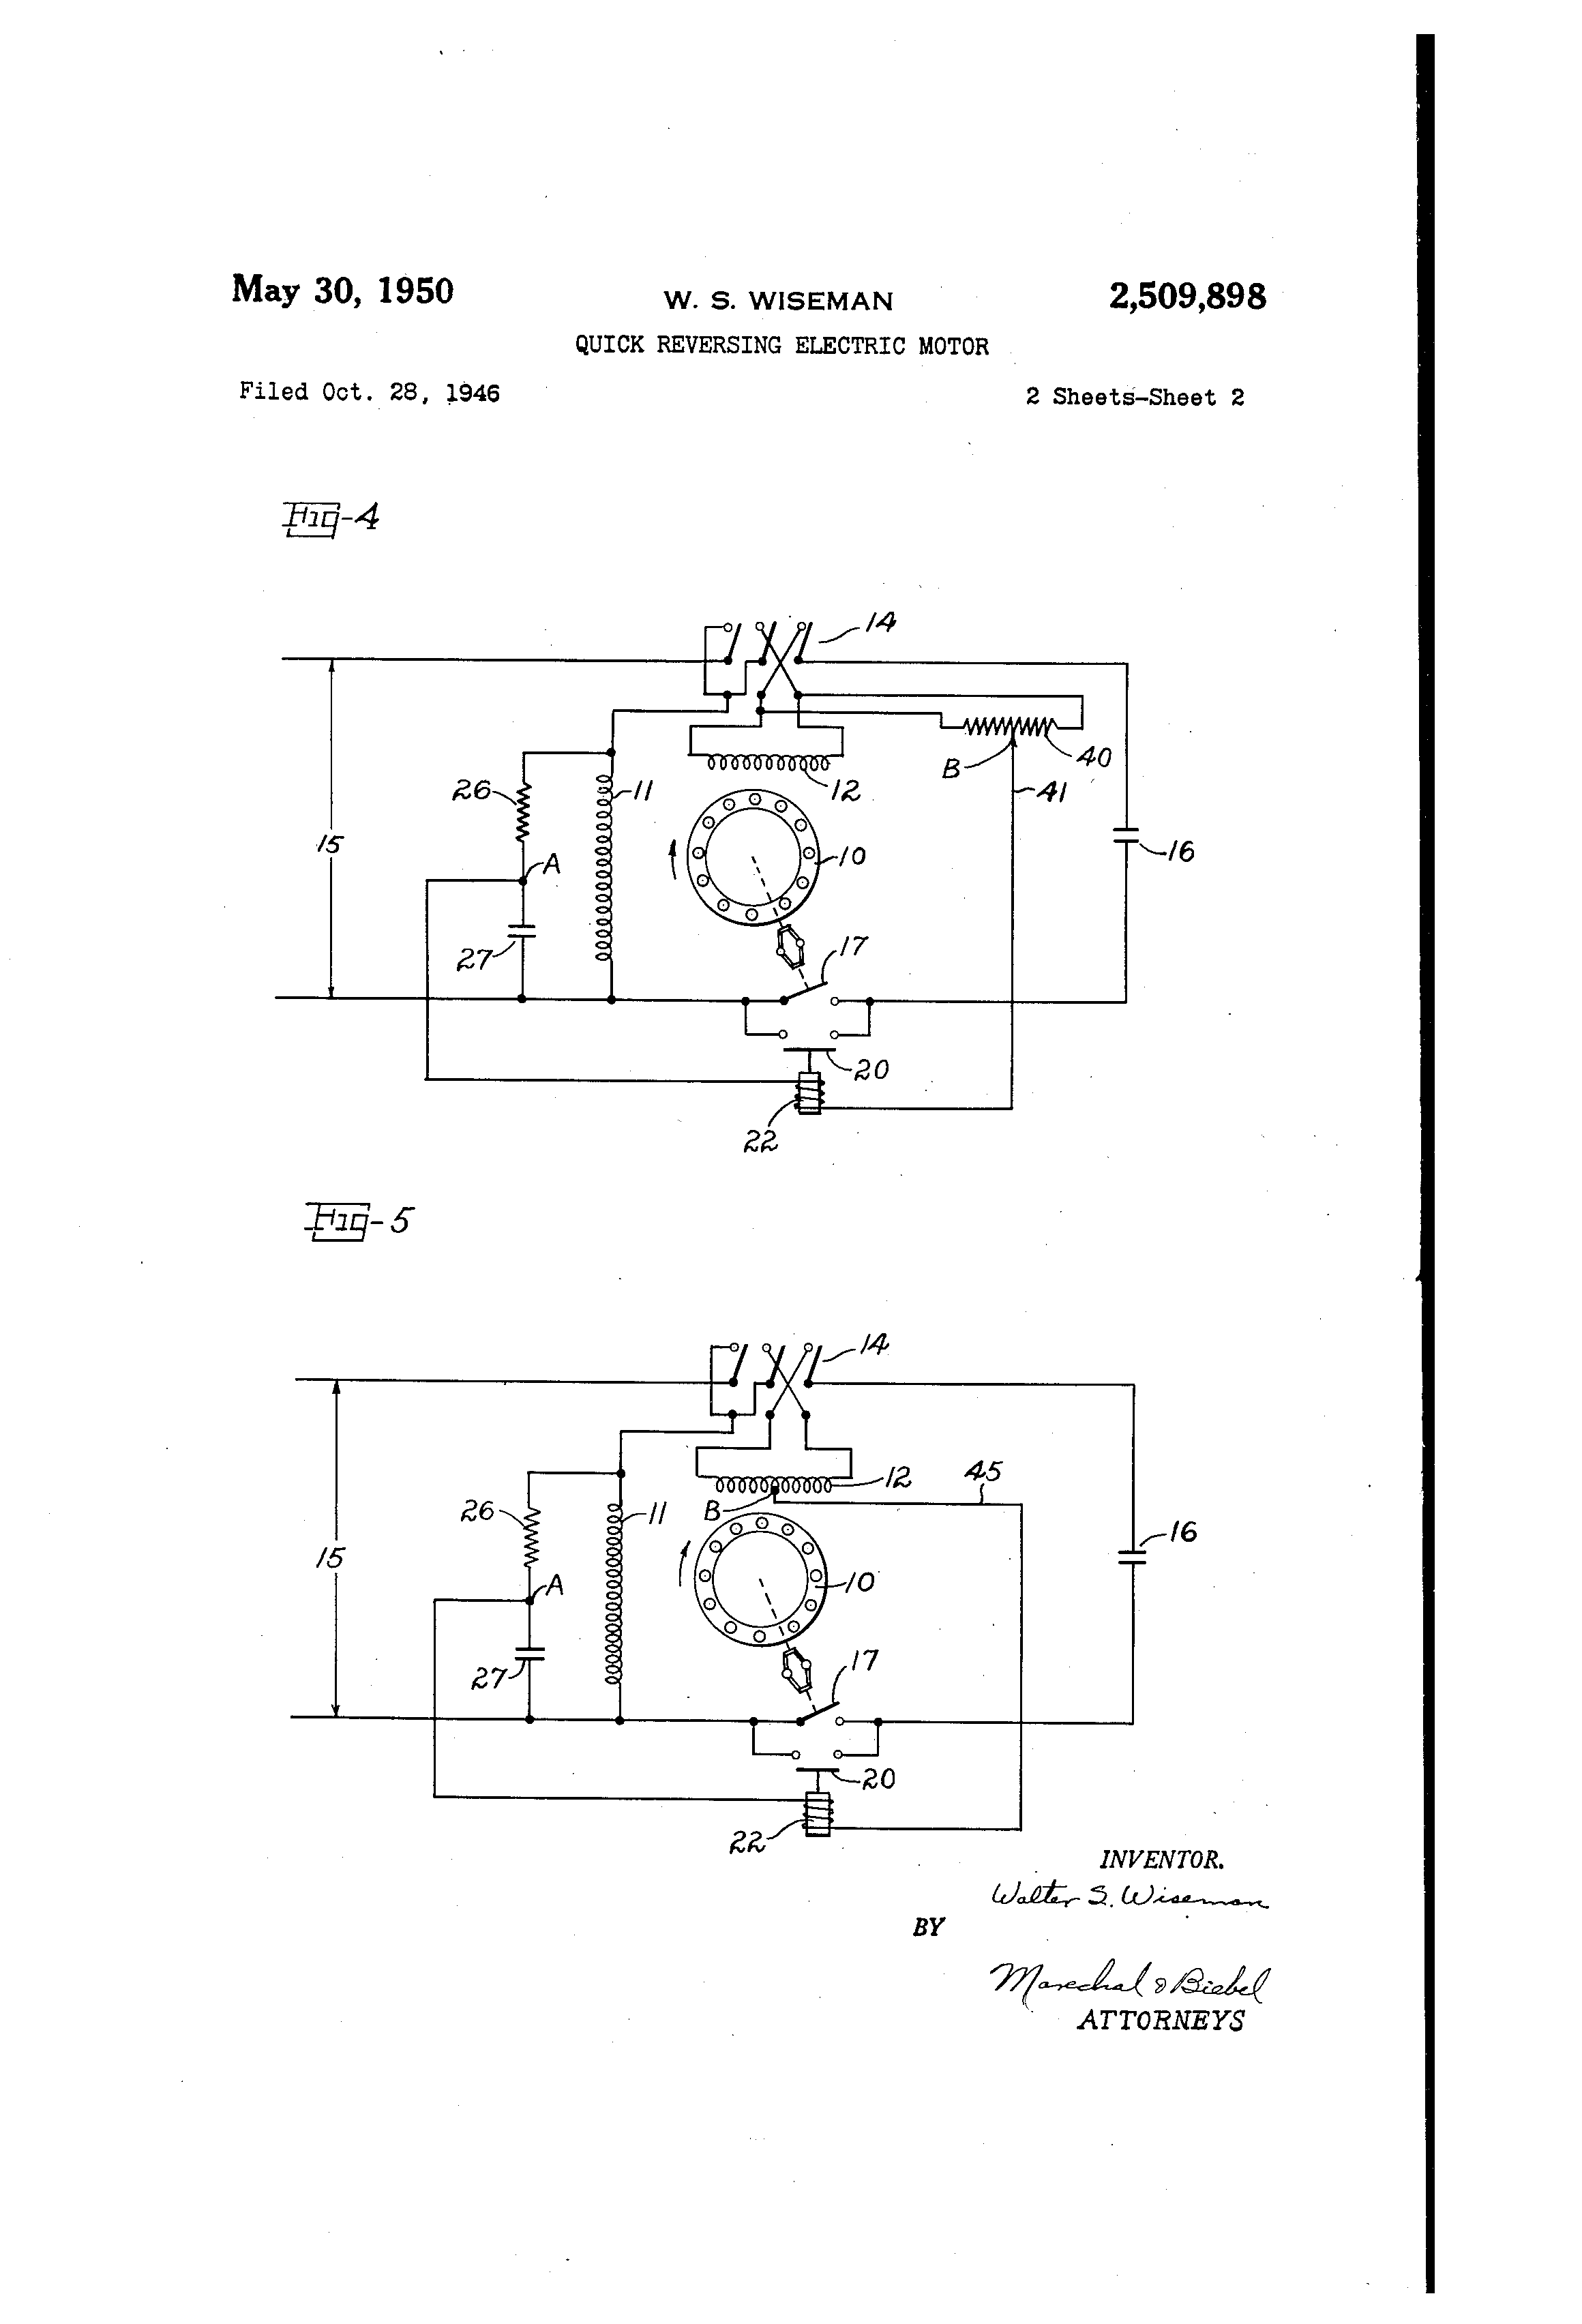 US2509898 1?resize\=665%2C977\&ssl\=1 dayton drum switch wiring diagram dayton wiring diagrams collection dayton drum switch wiring diagram at gsmx.co